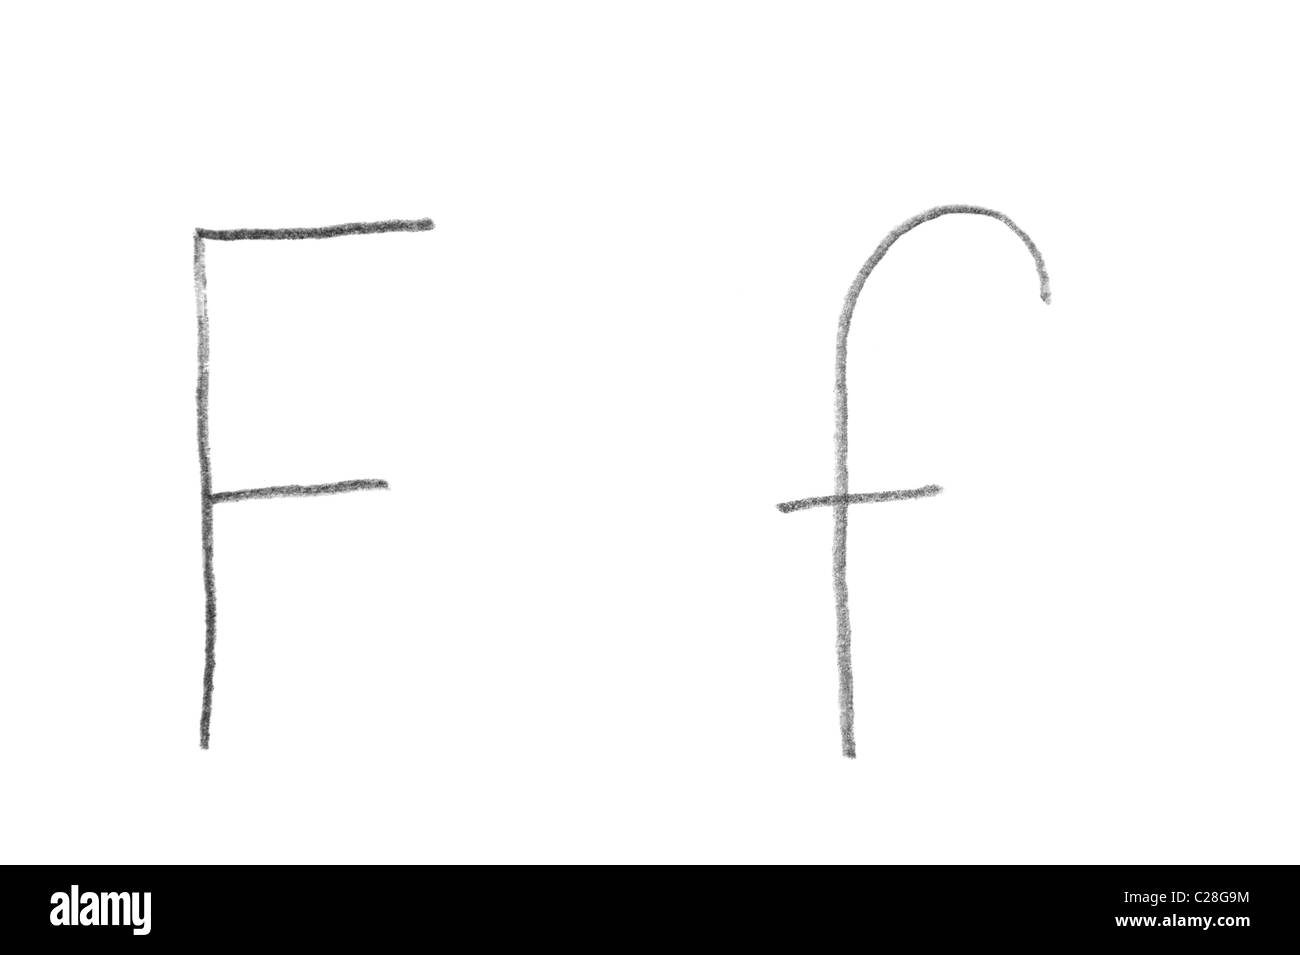 Hand written letter F, both upper and lower case  - Stock Image